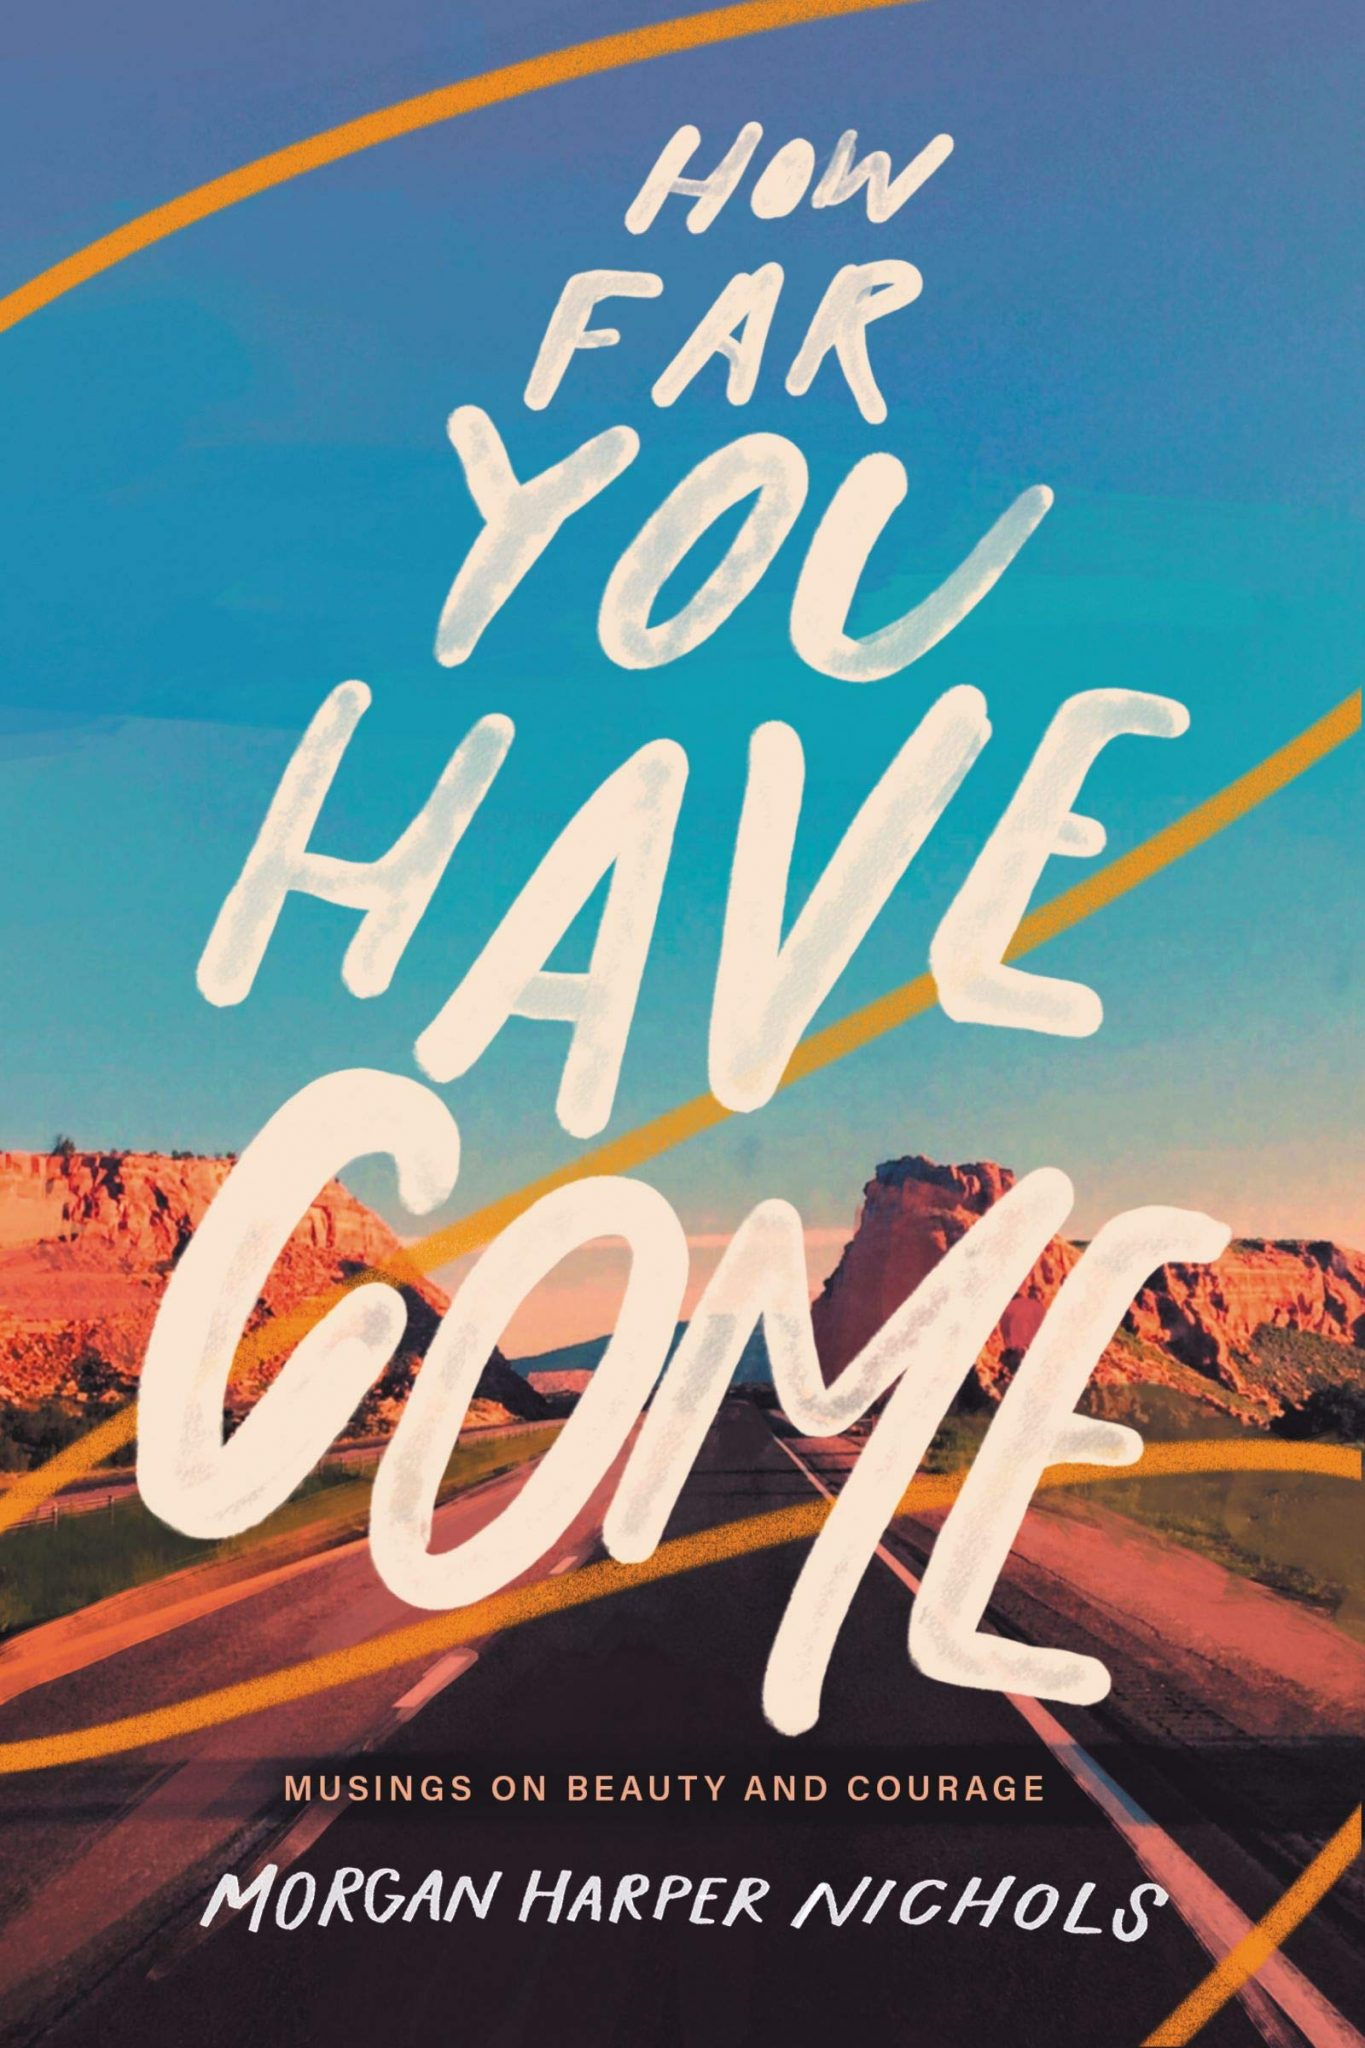 HOW FAR YOU HAVE COME book